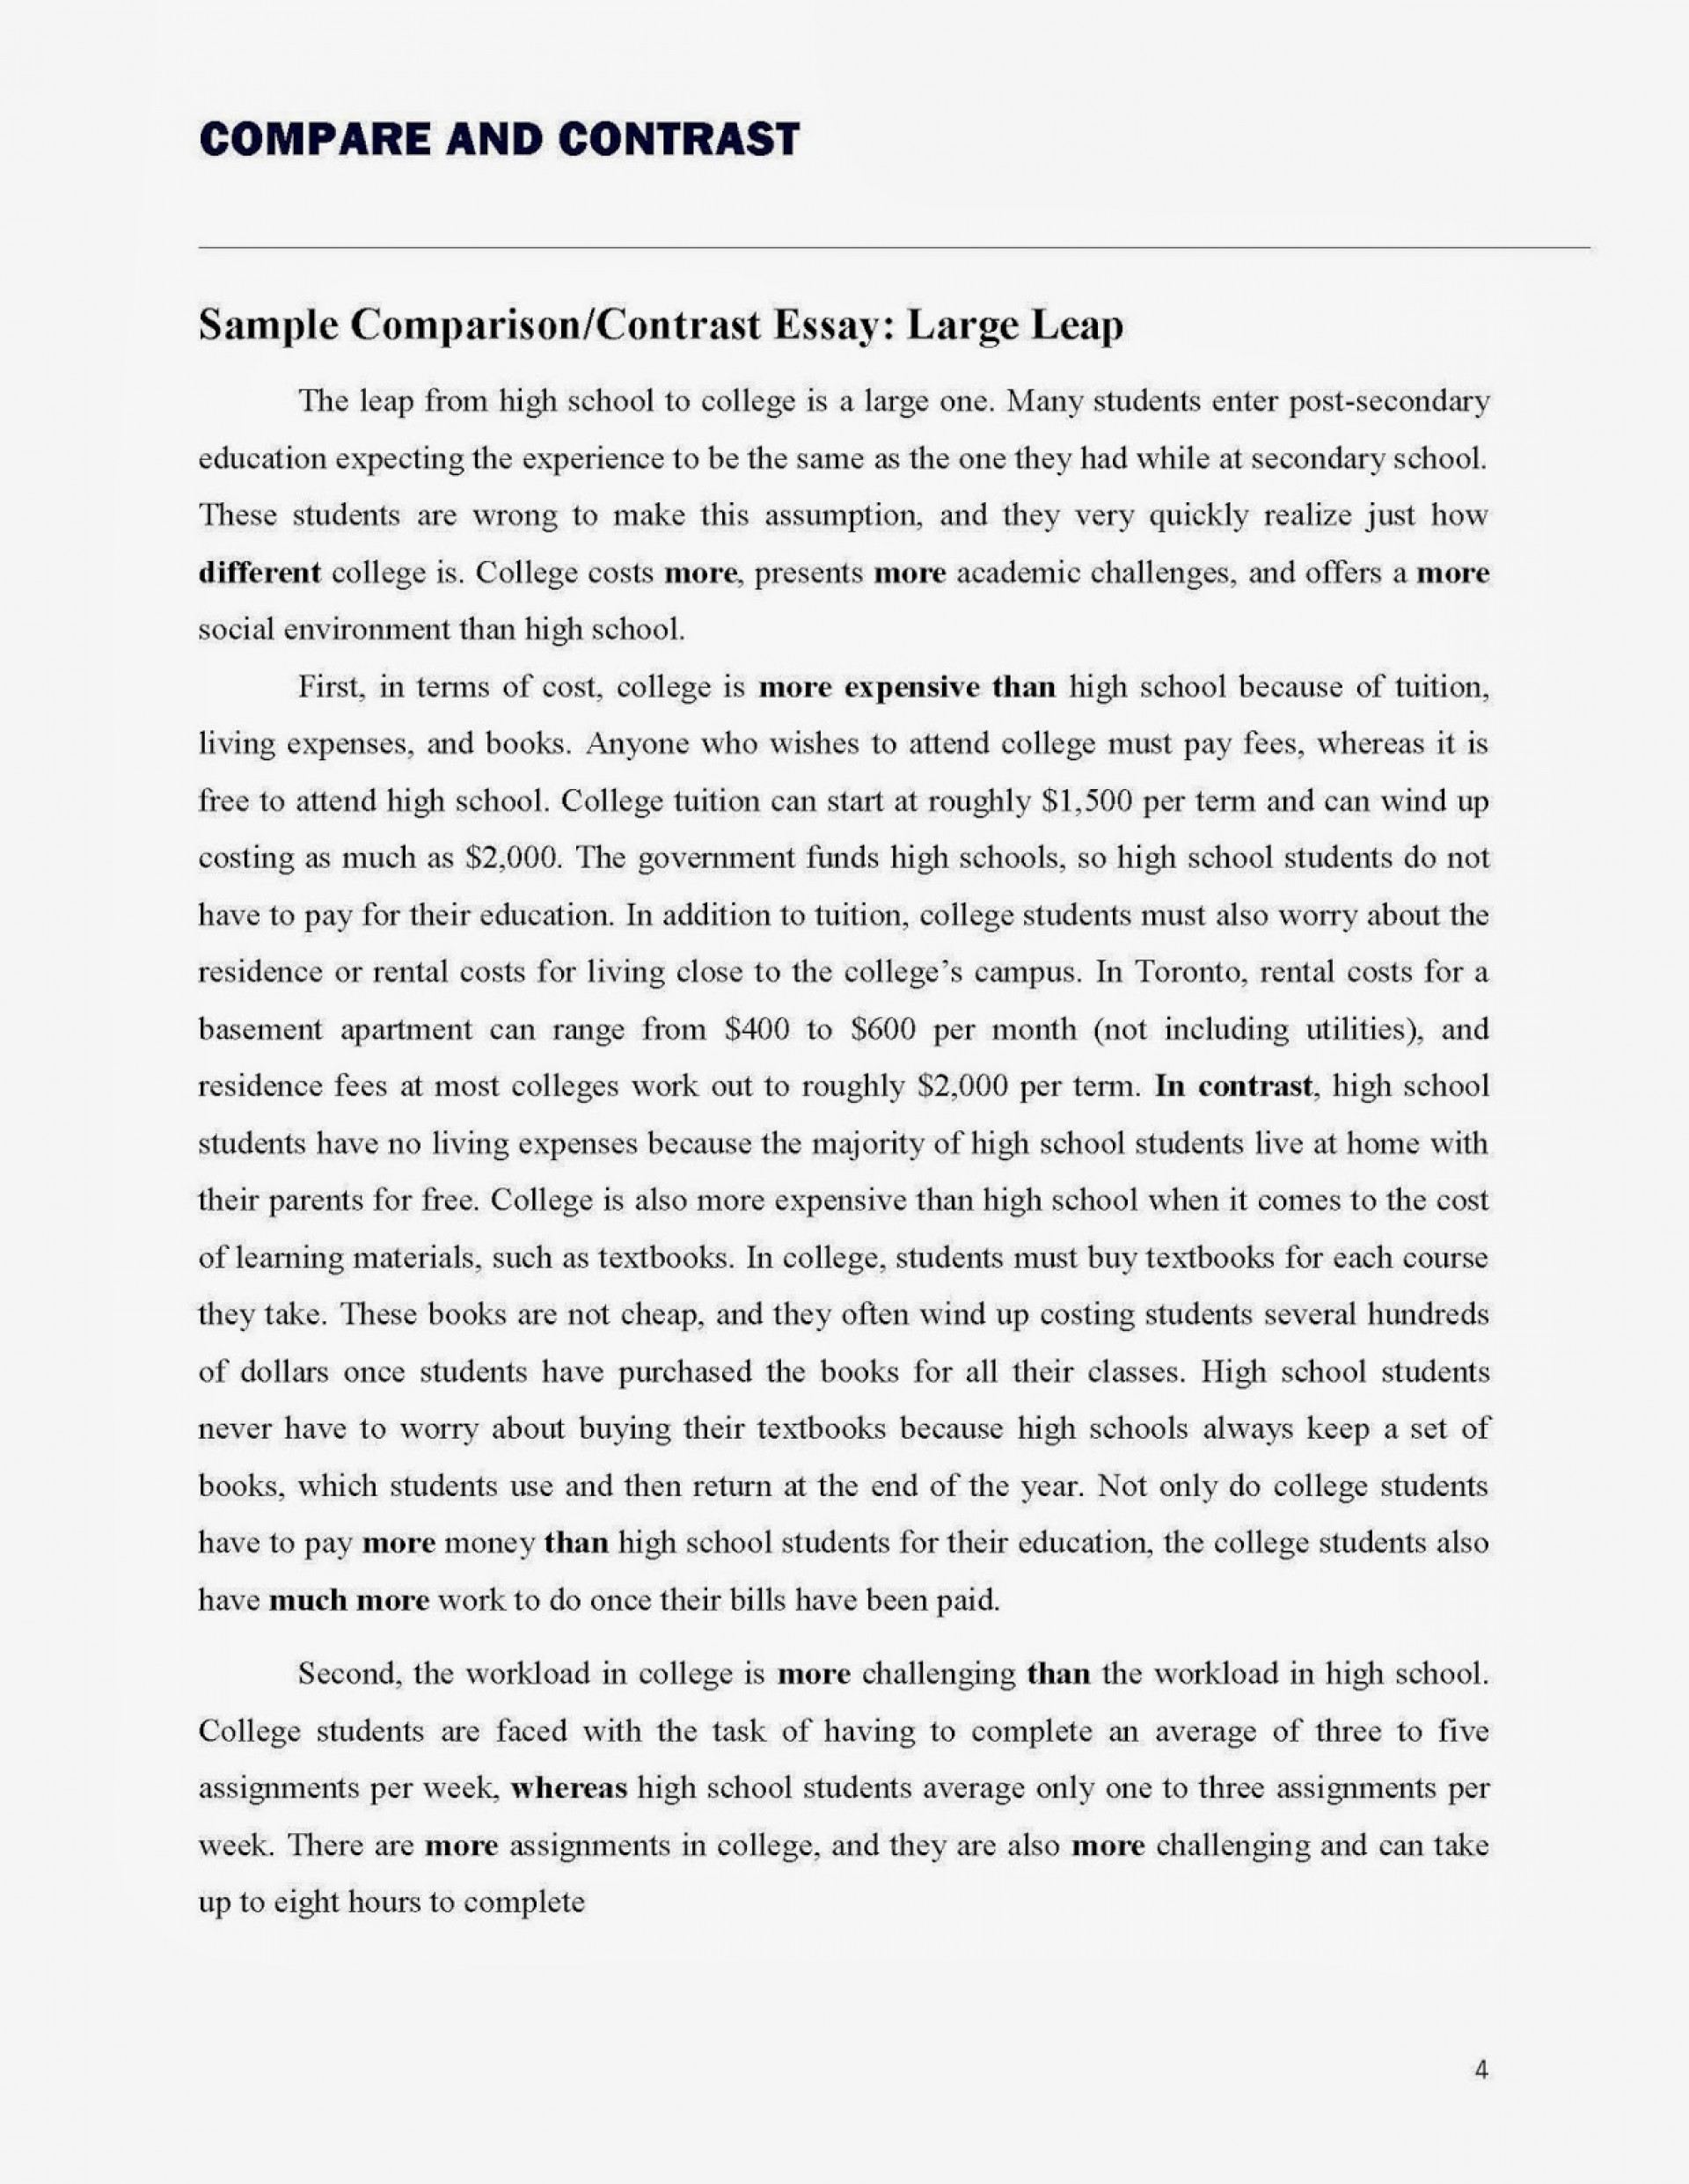 011 Good Compare And Contrast Essay Compare20and20contrast20essay Page 4 Unbelievable The Great Gatsby Tom Examples Middle School Movie Book 1920